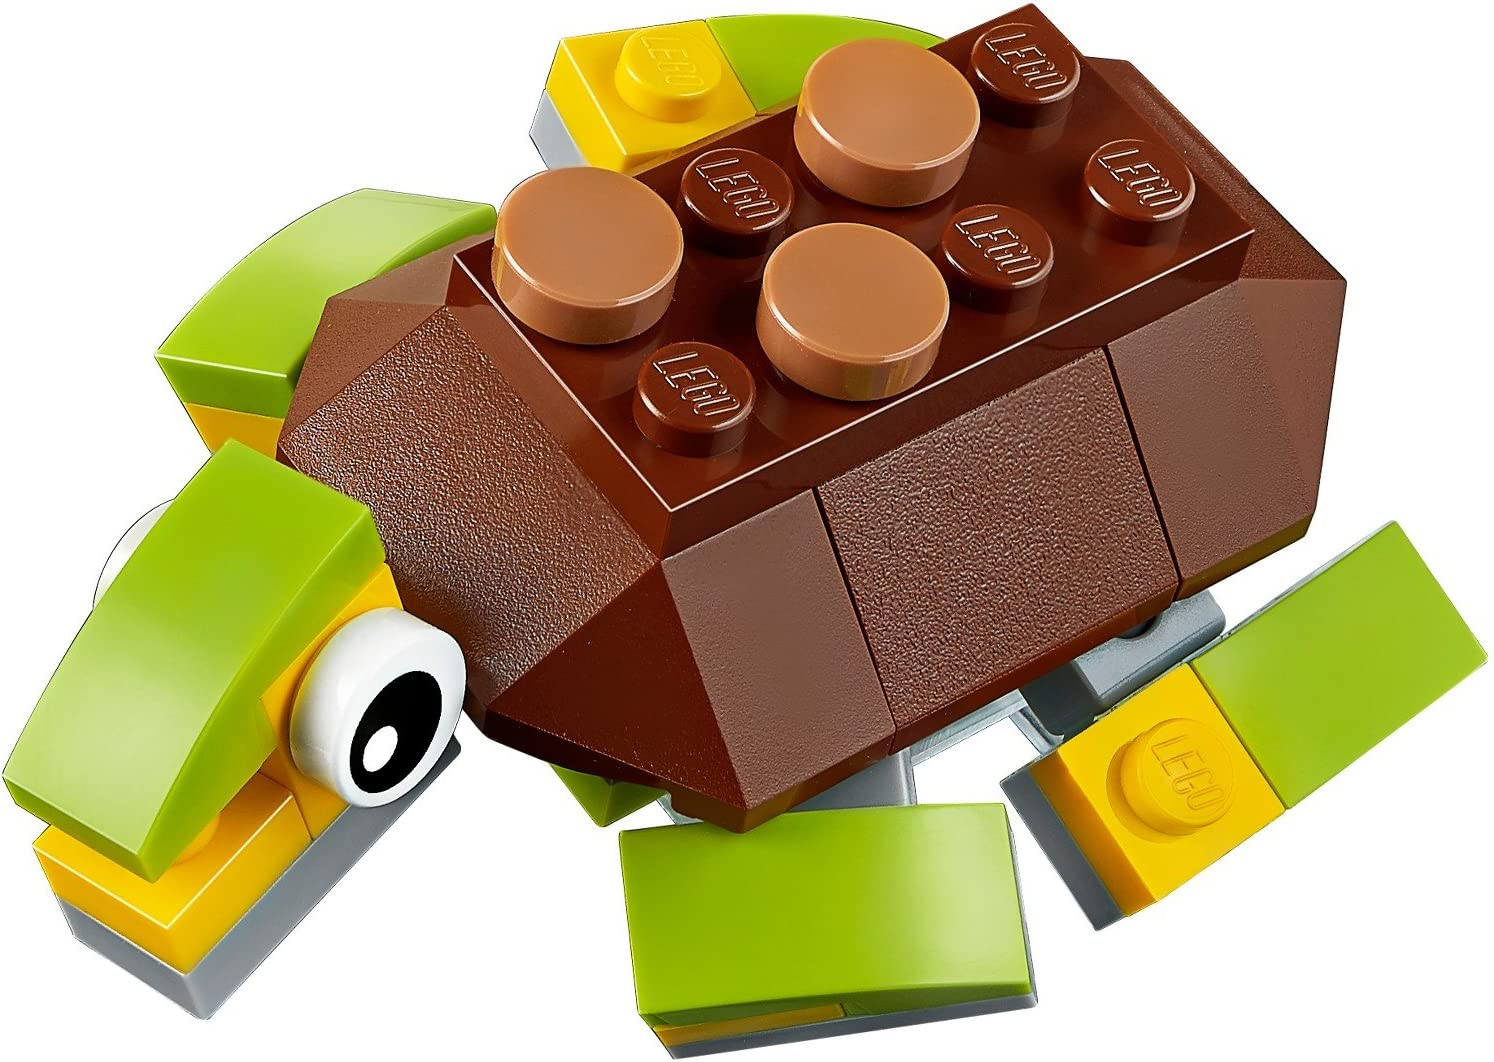 LEGO 30476 Creator Happy Turtle Bagged